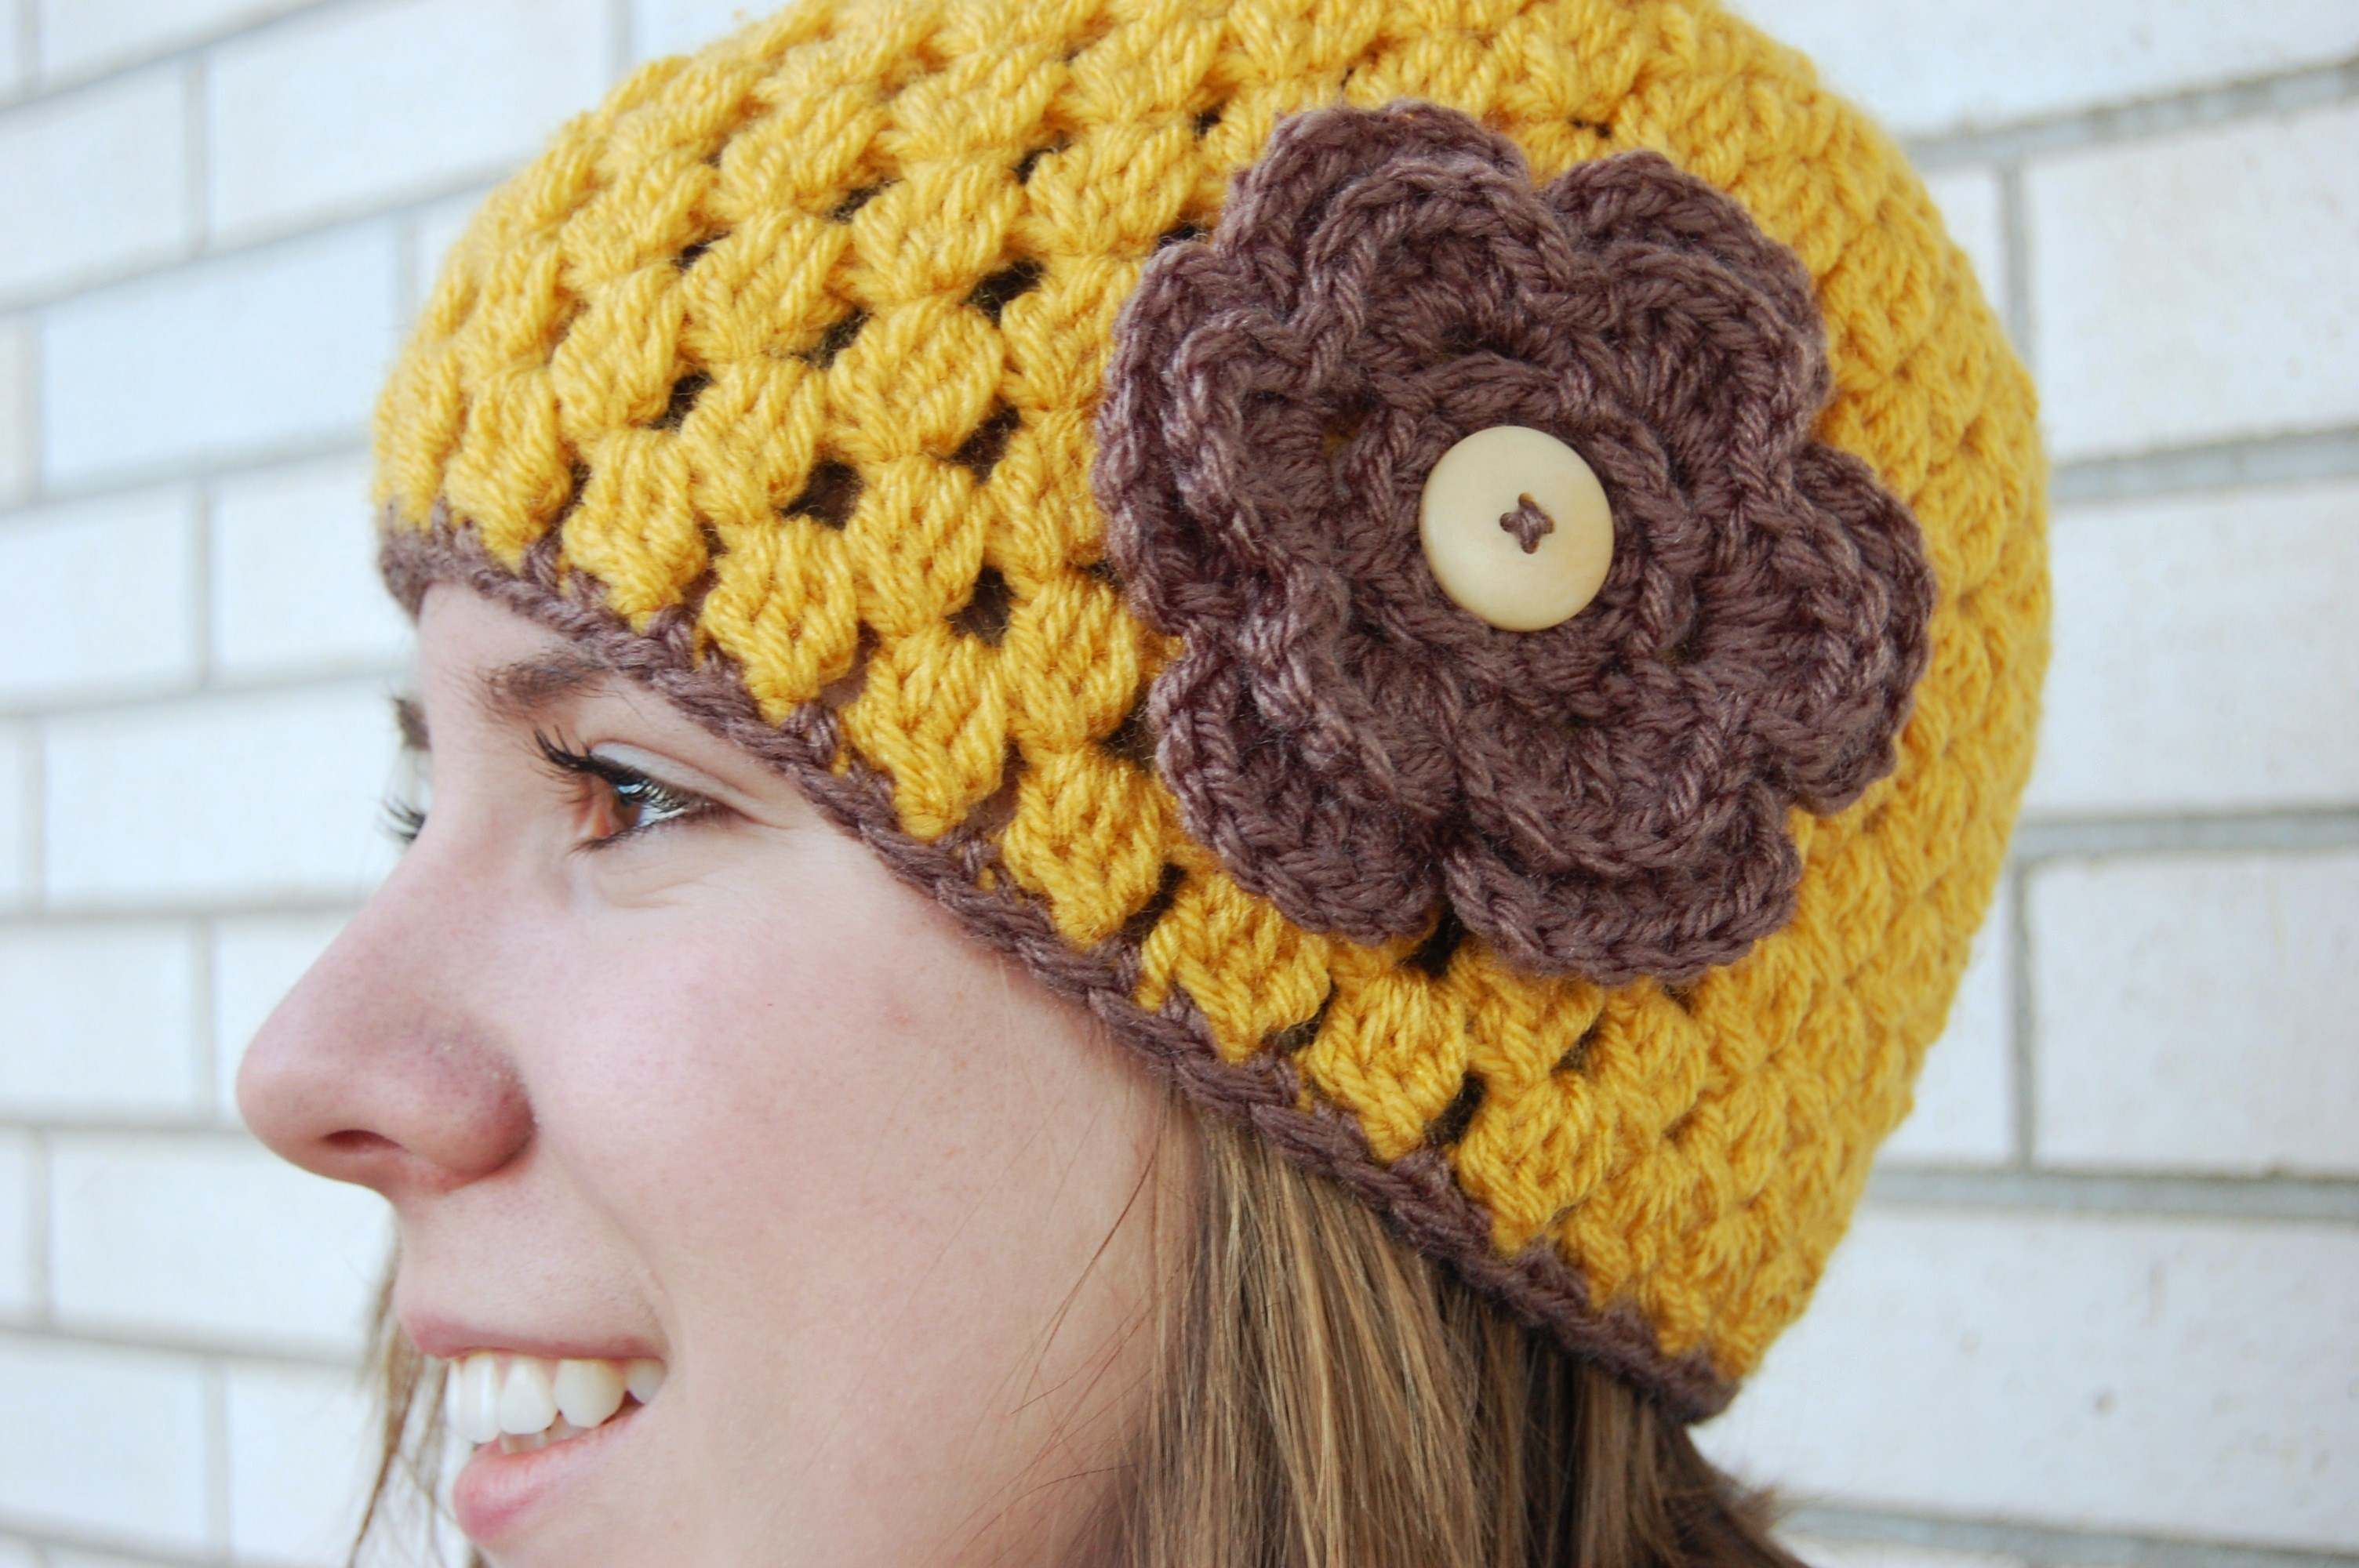 Crochet Patterns J Hook : named this Jenny Lee crochet hat pattern after one of my current ...